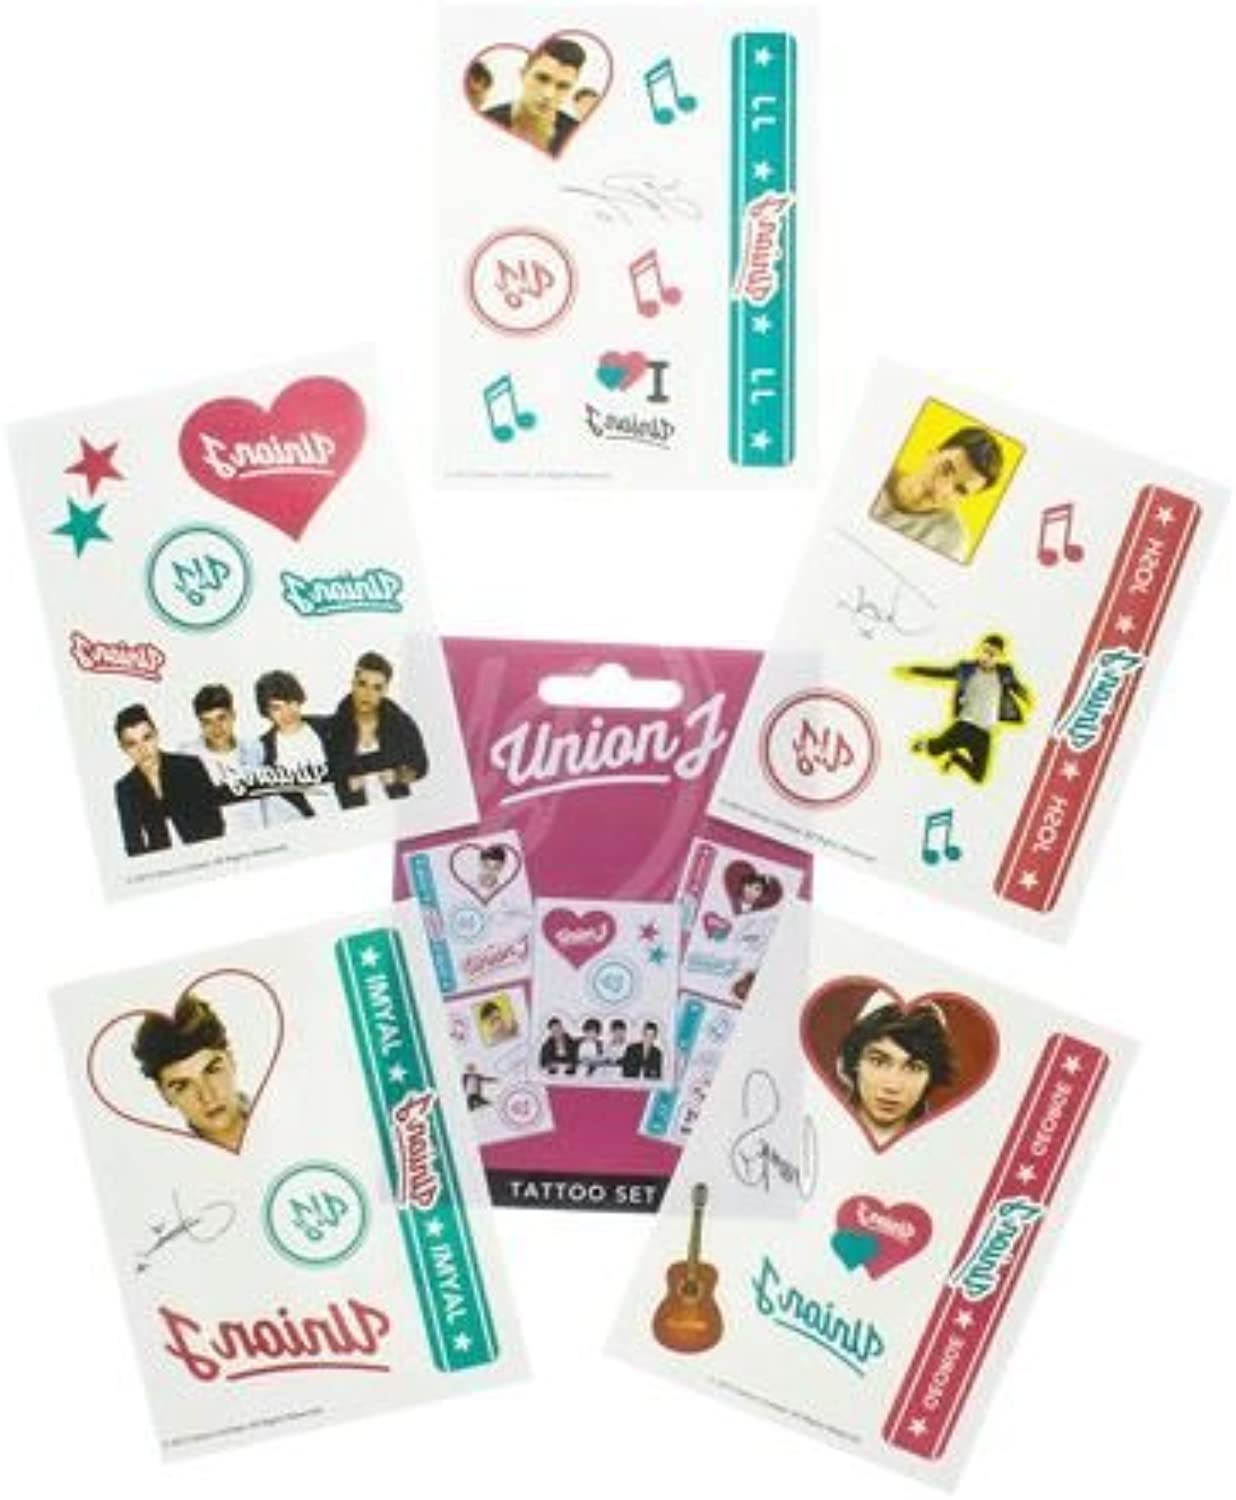 Official Union J Temporary Tattoo Pack by Union J